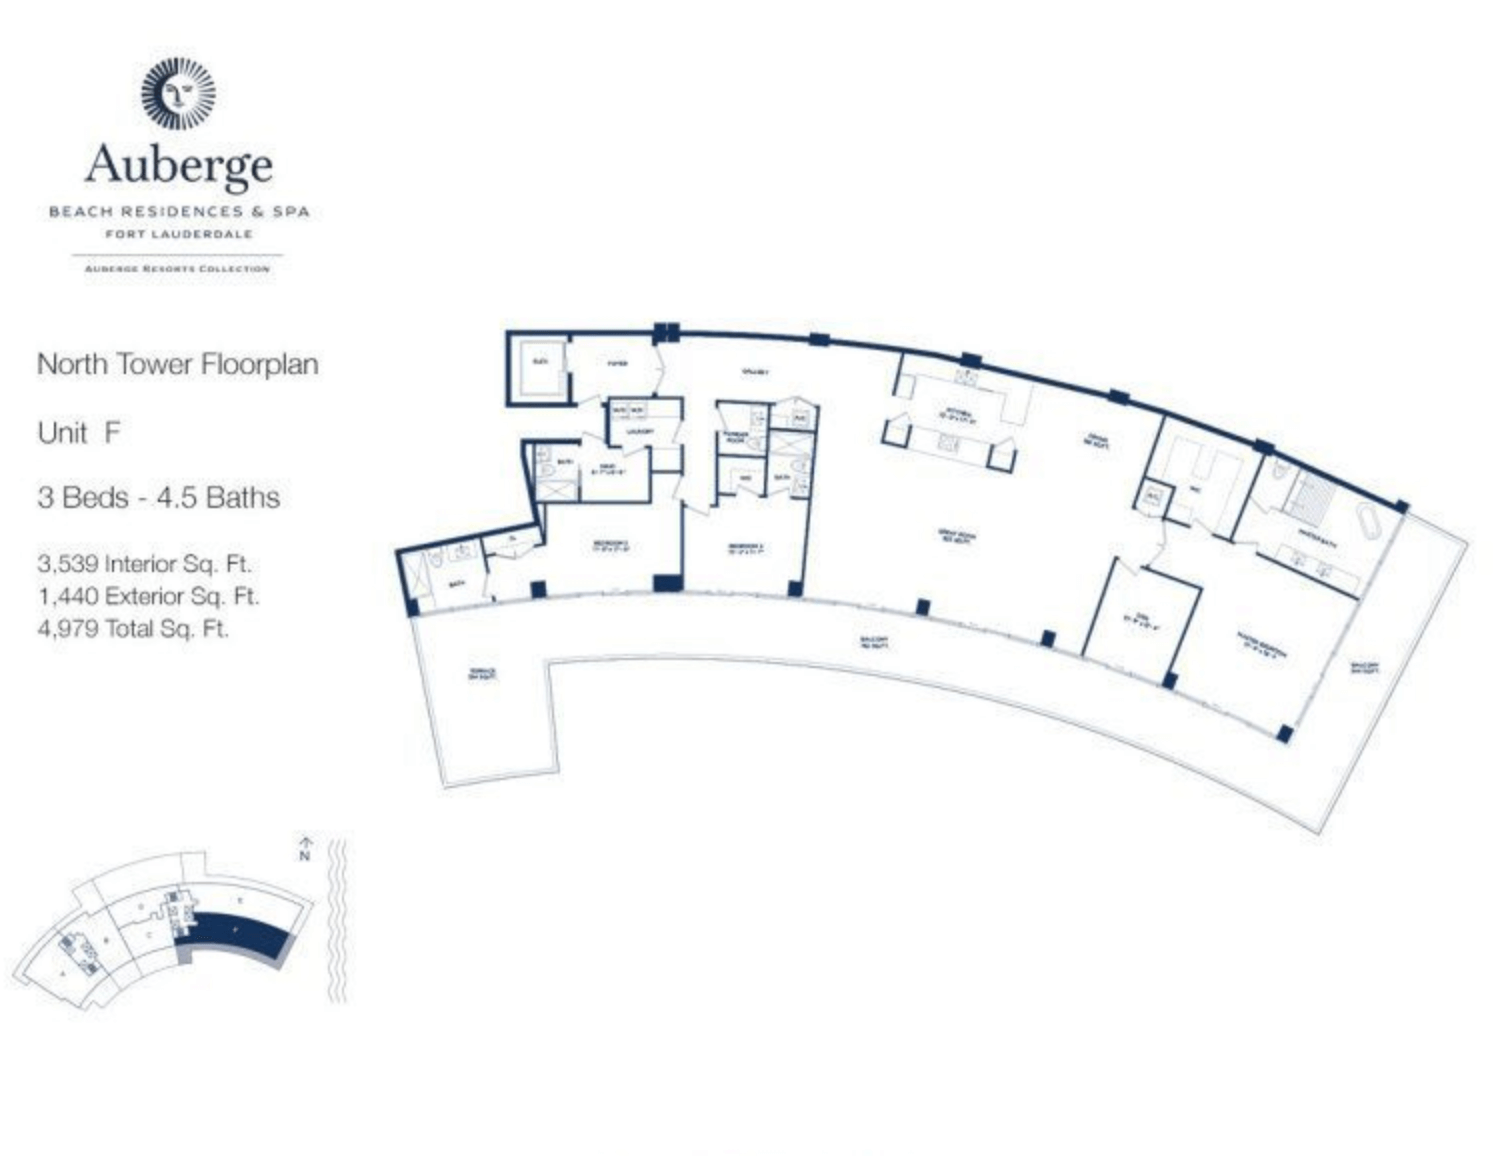 Auberge Beach Residences North Tower F | 3 Beds - 4.5 baths